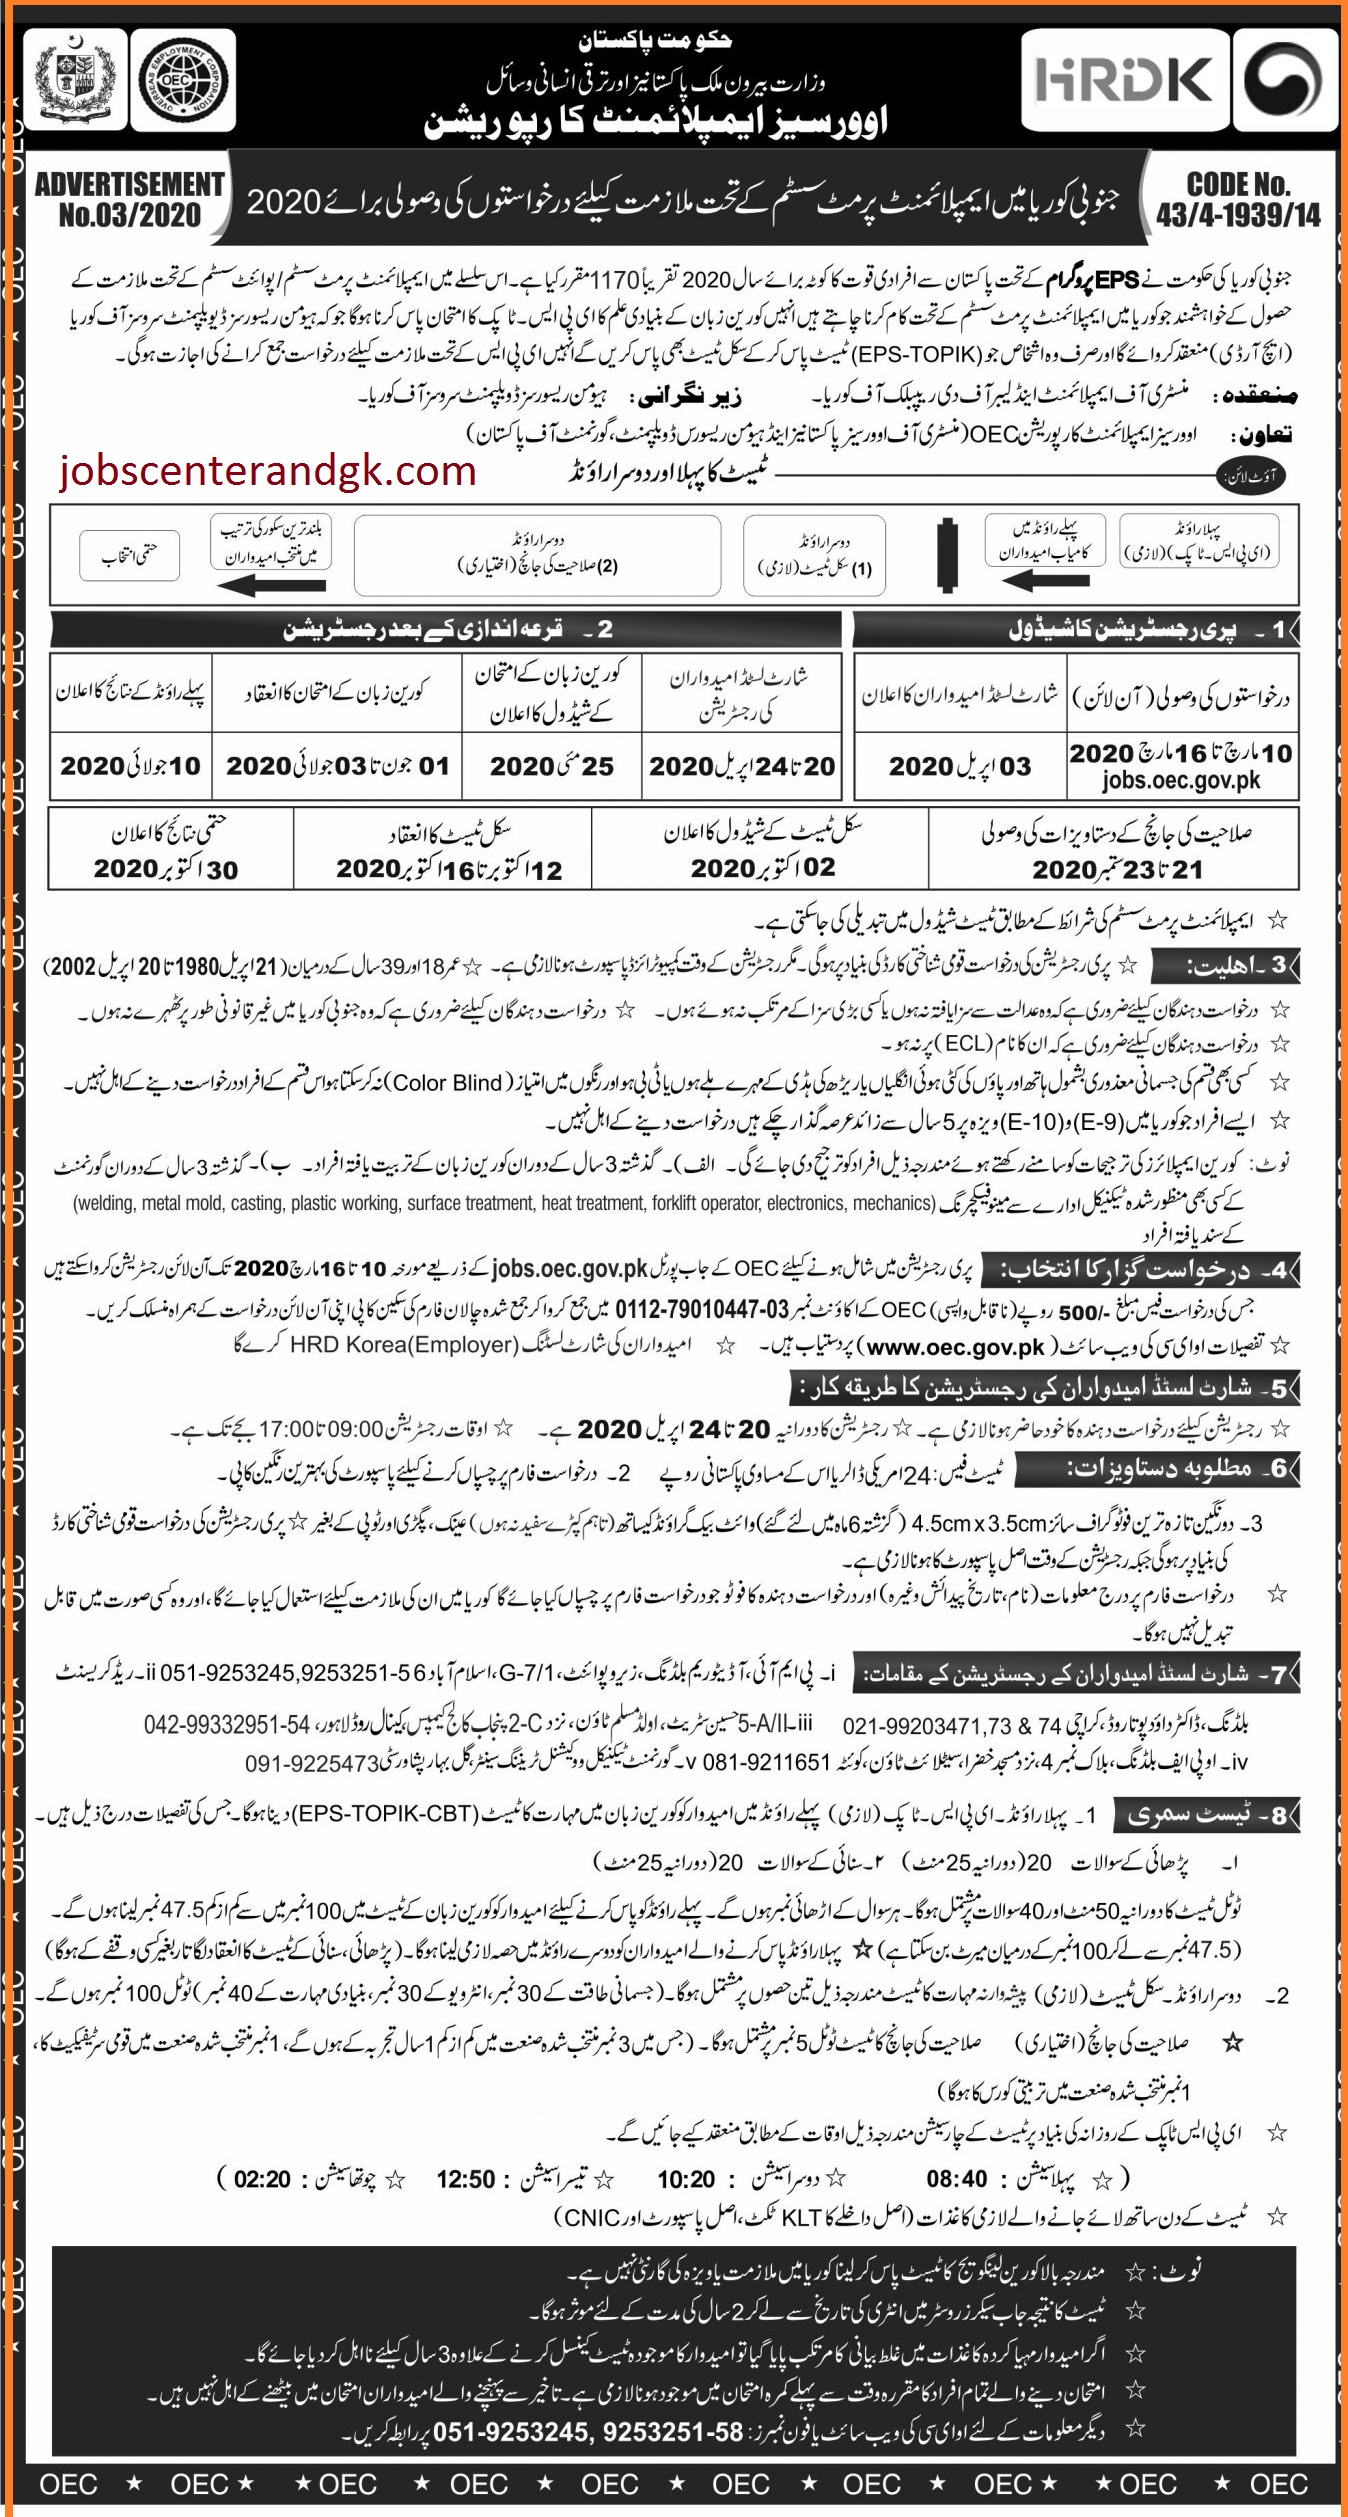 OEC Jobs In Korea 2020 Application Form And Challan Form 2020 - Jobs Center  and GK